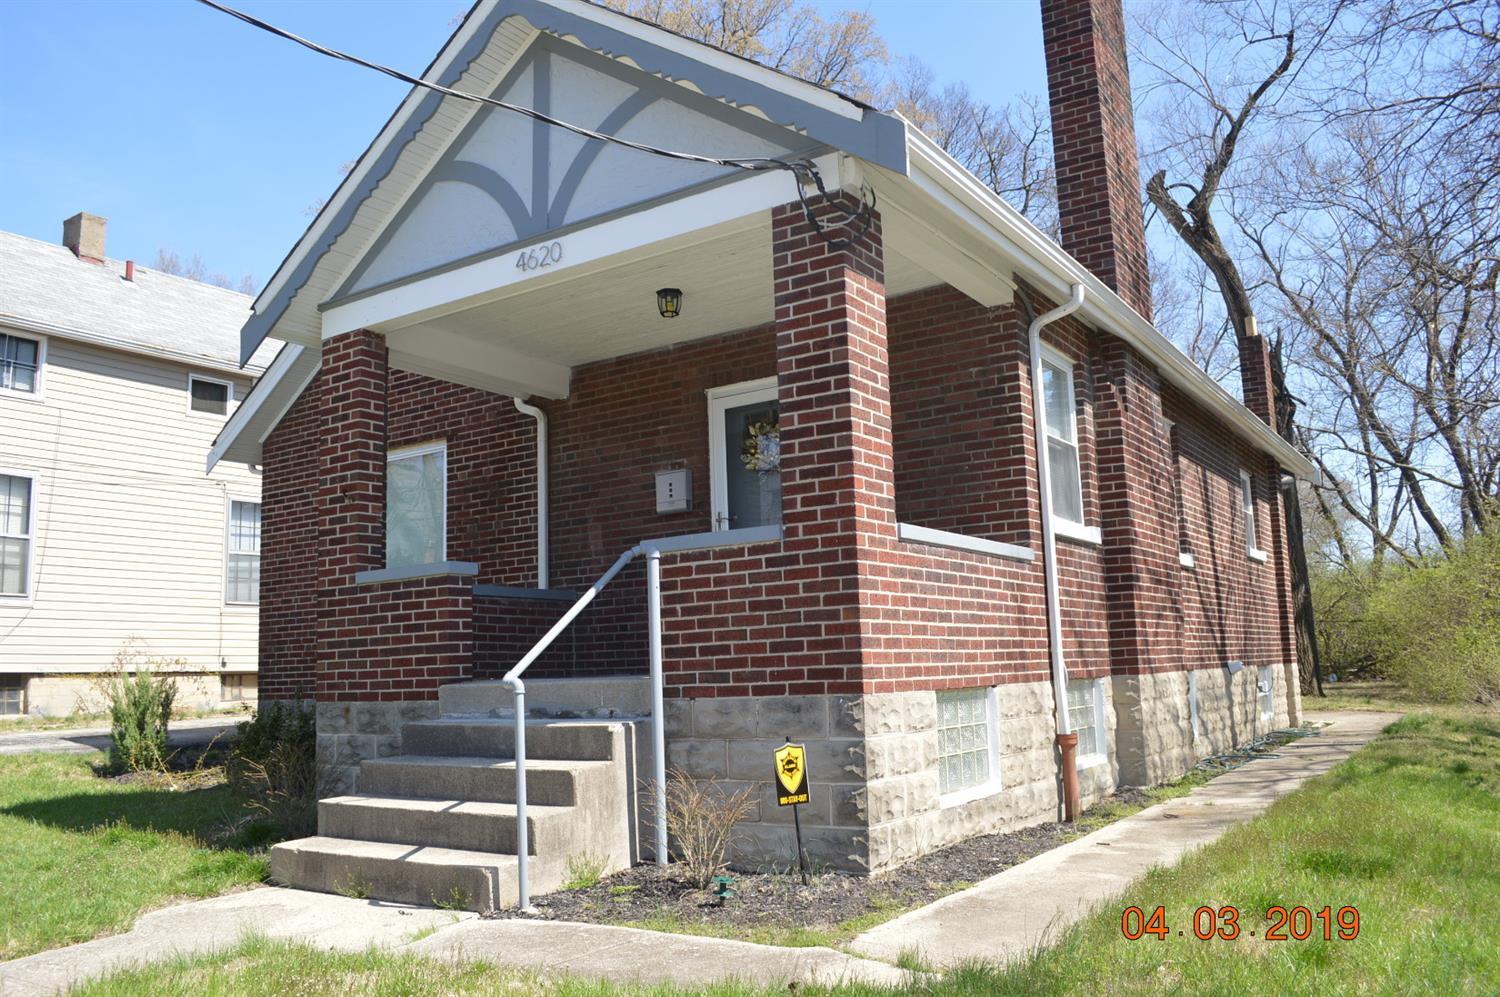 4620 Chickering Ave Spring Grove, OH